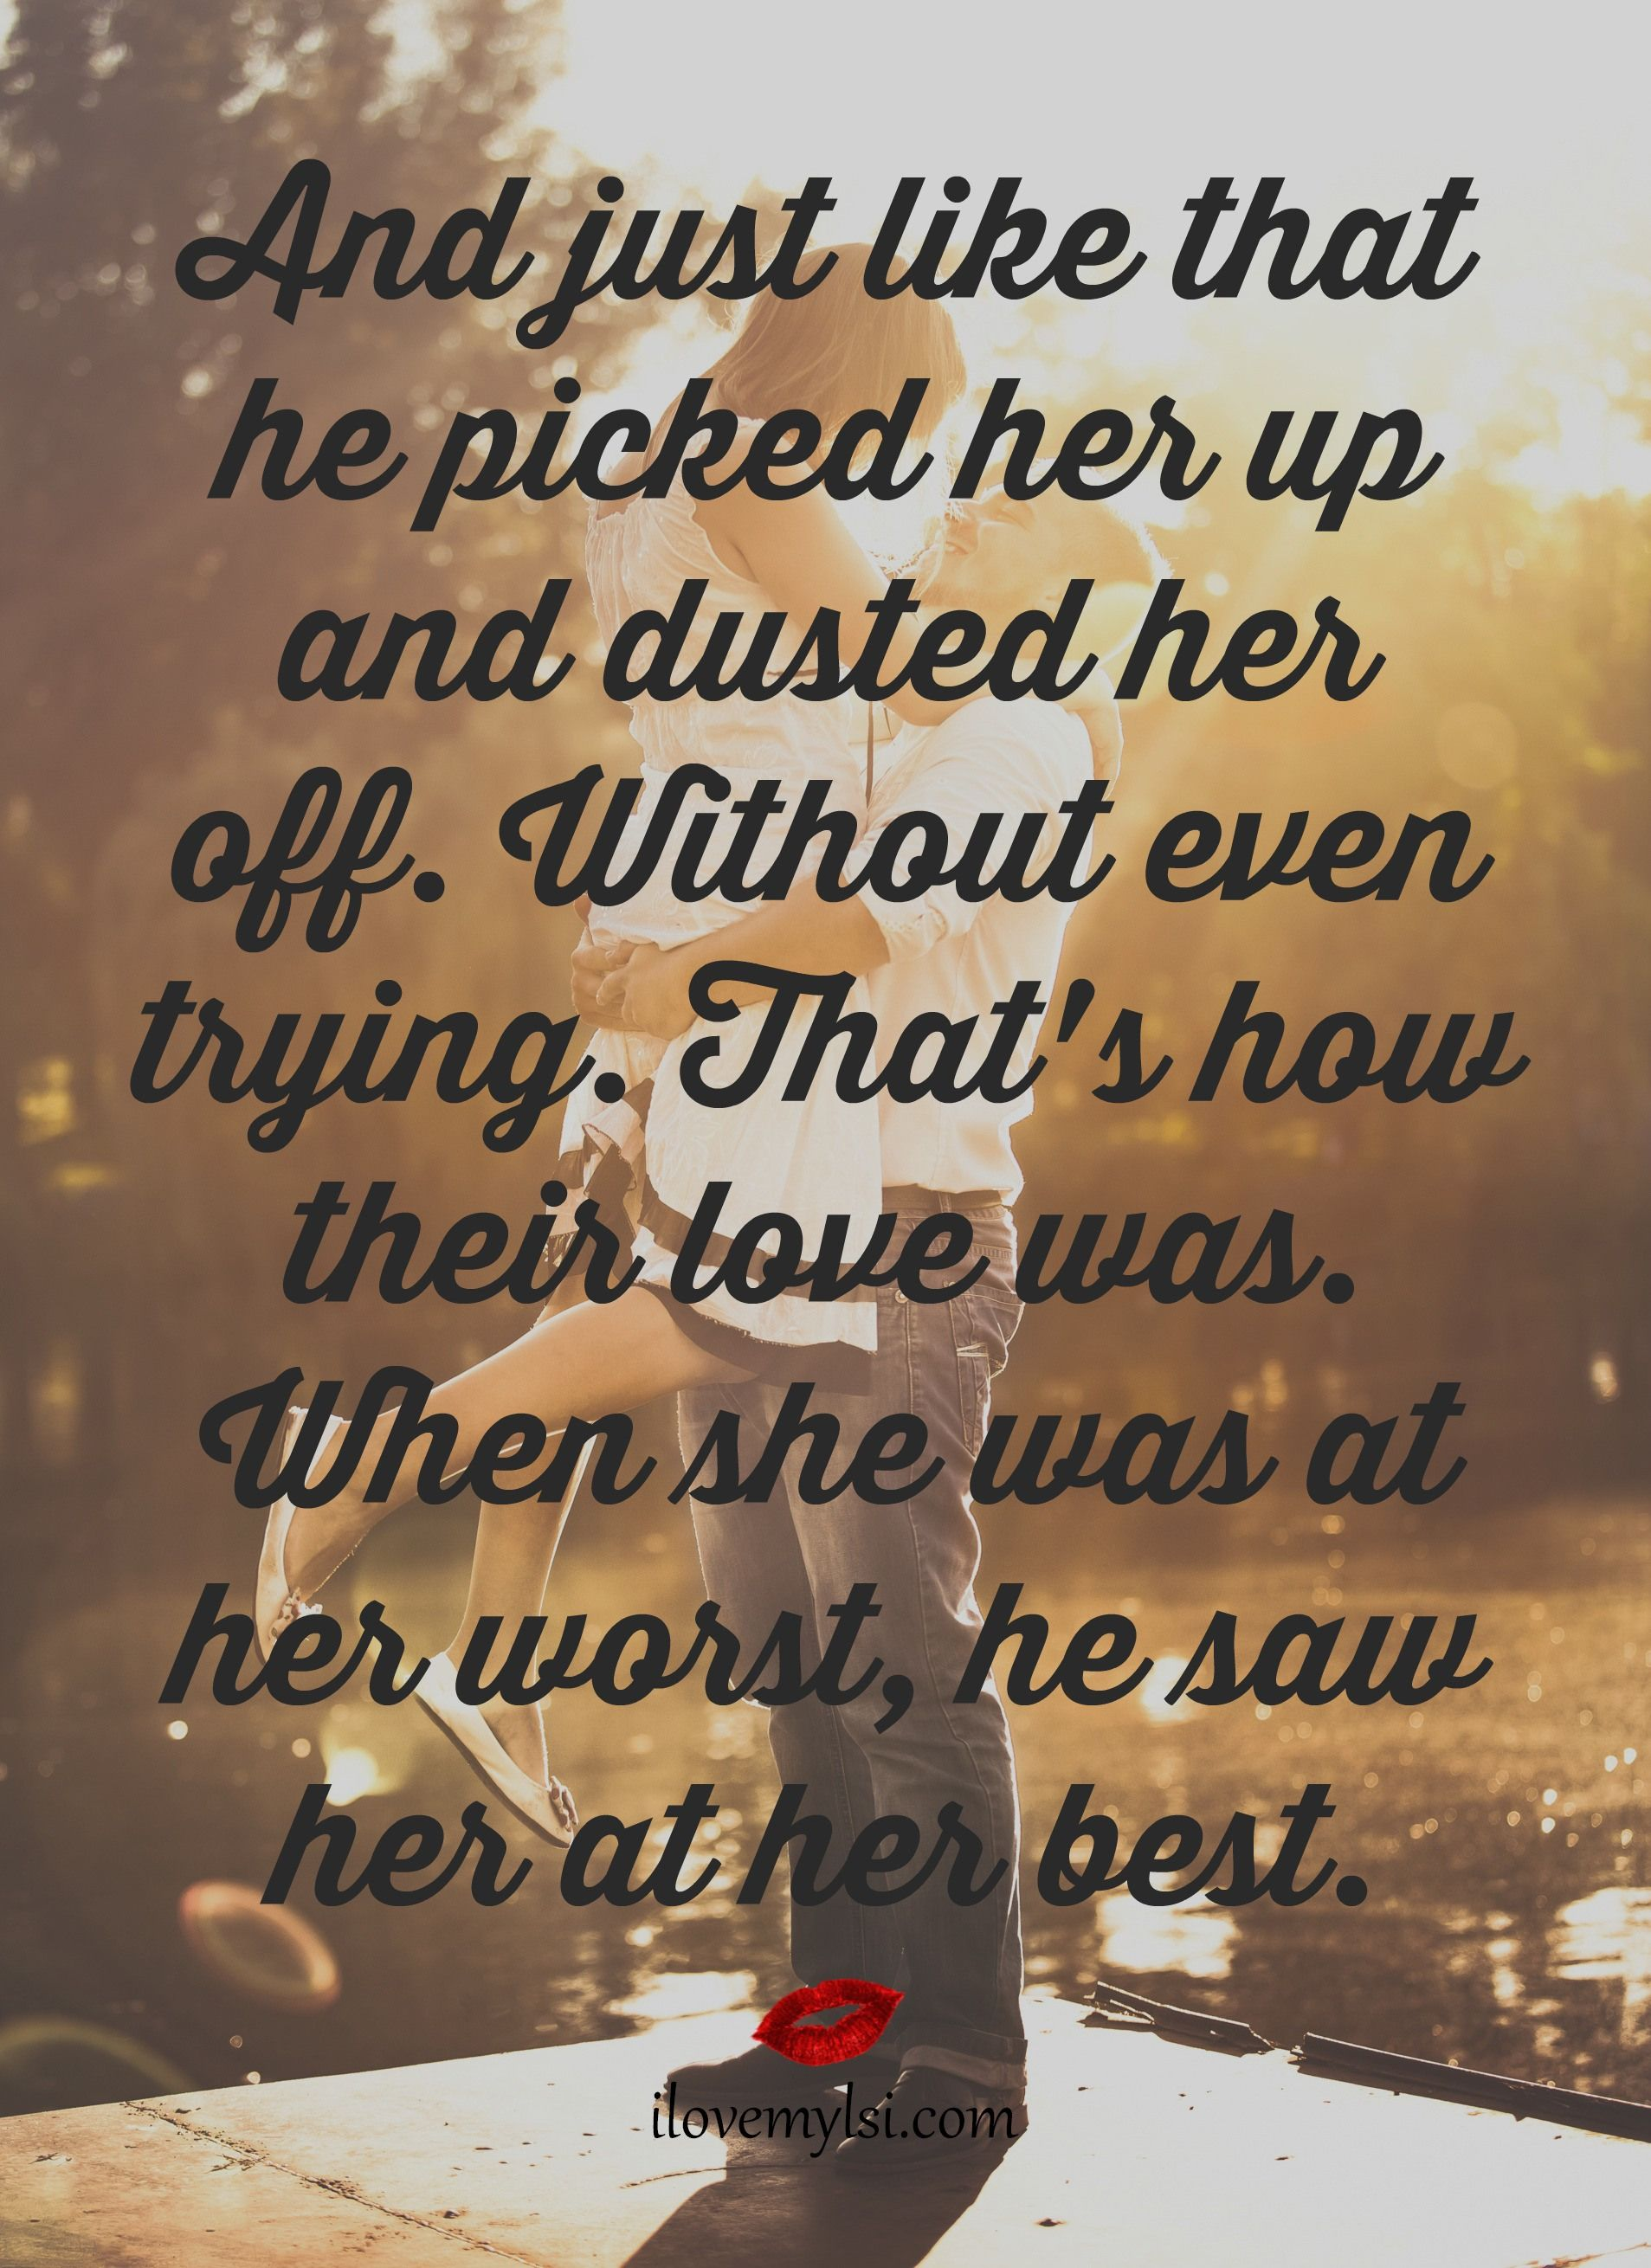 When she was at her worst he saw her at her best Finding Happiness QuotesFinding True Love